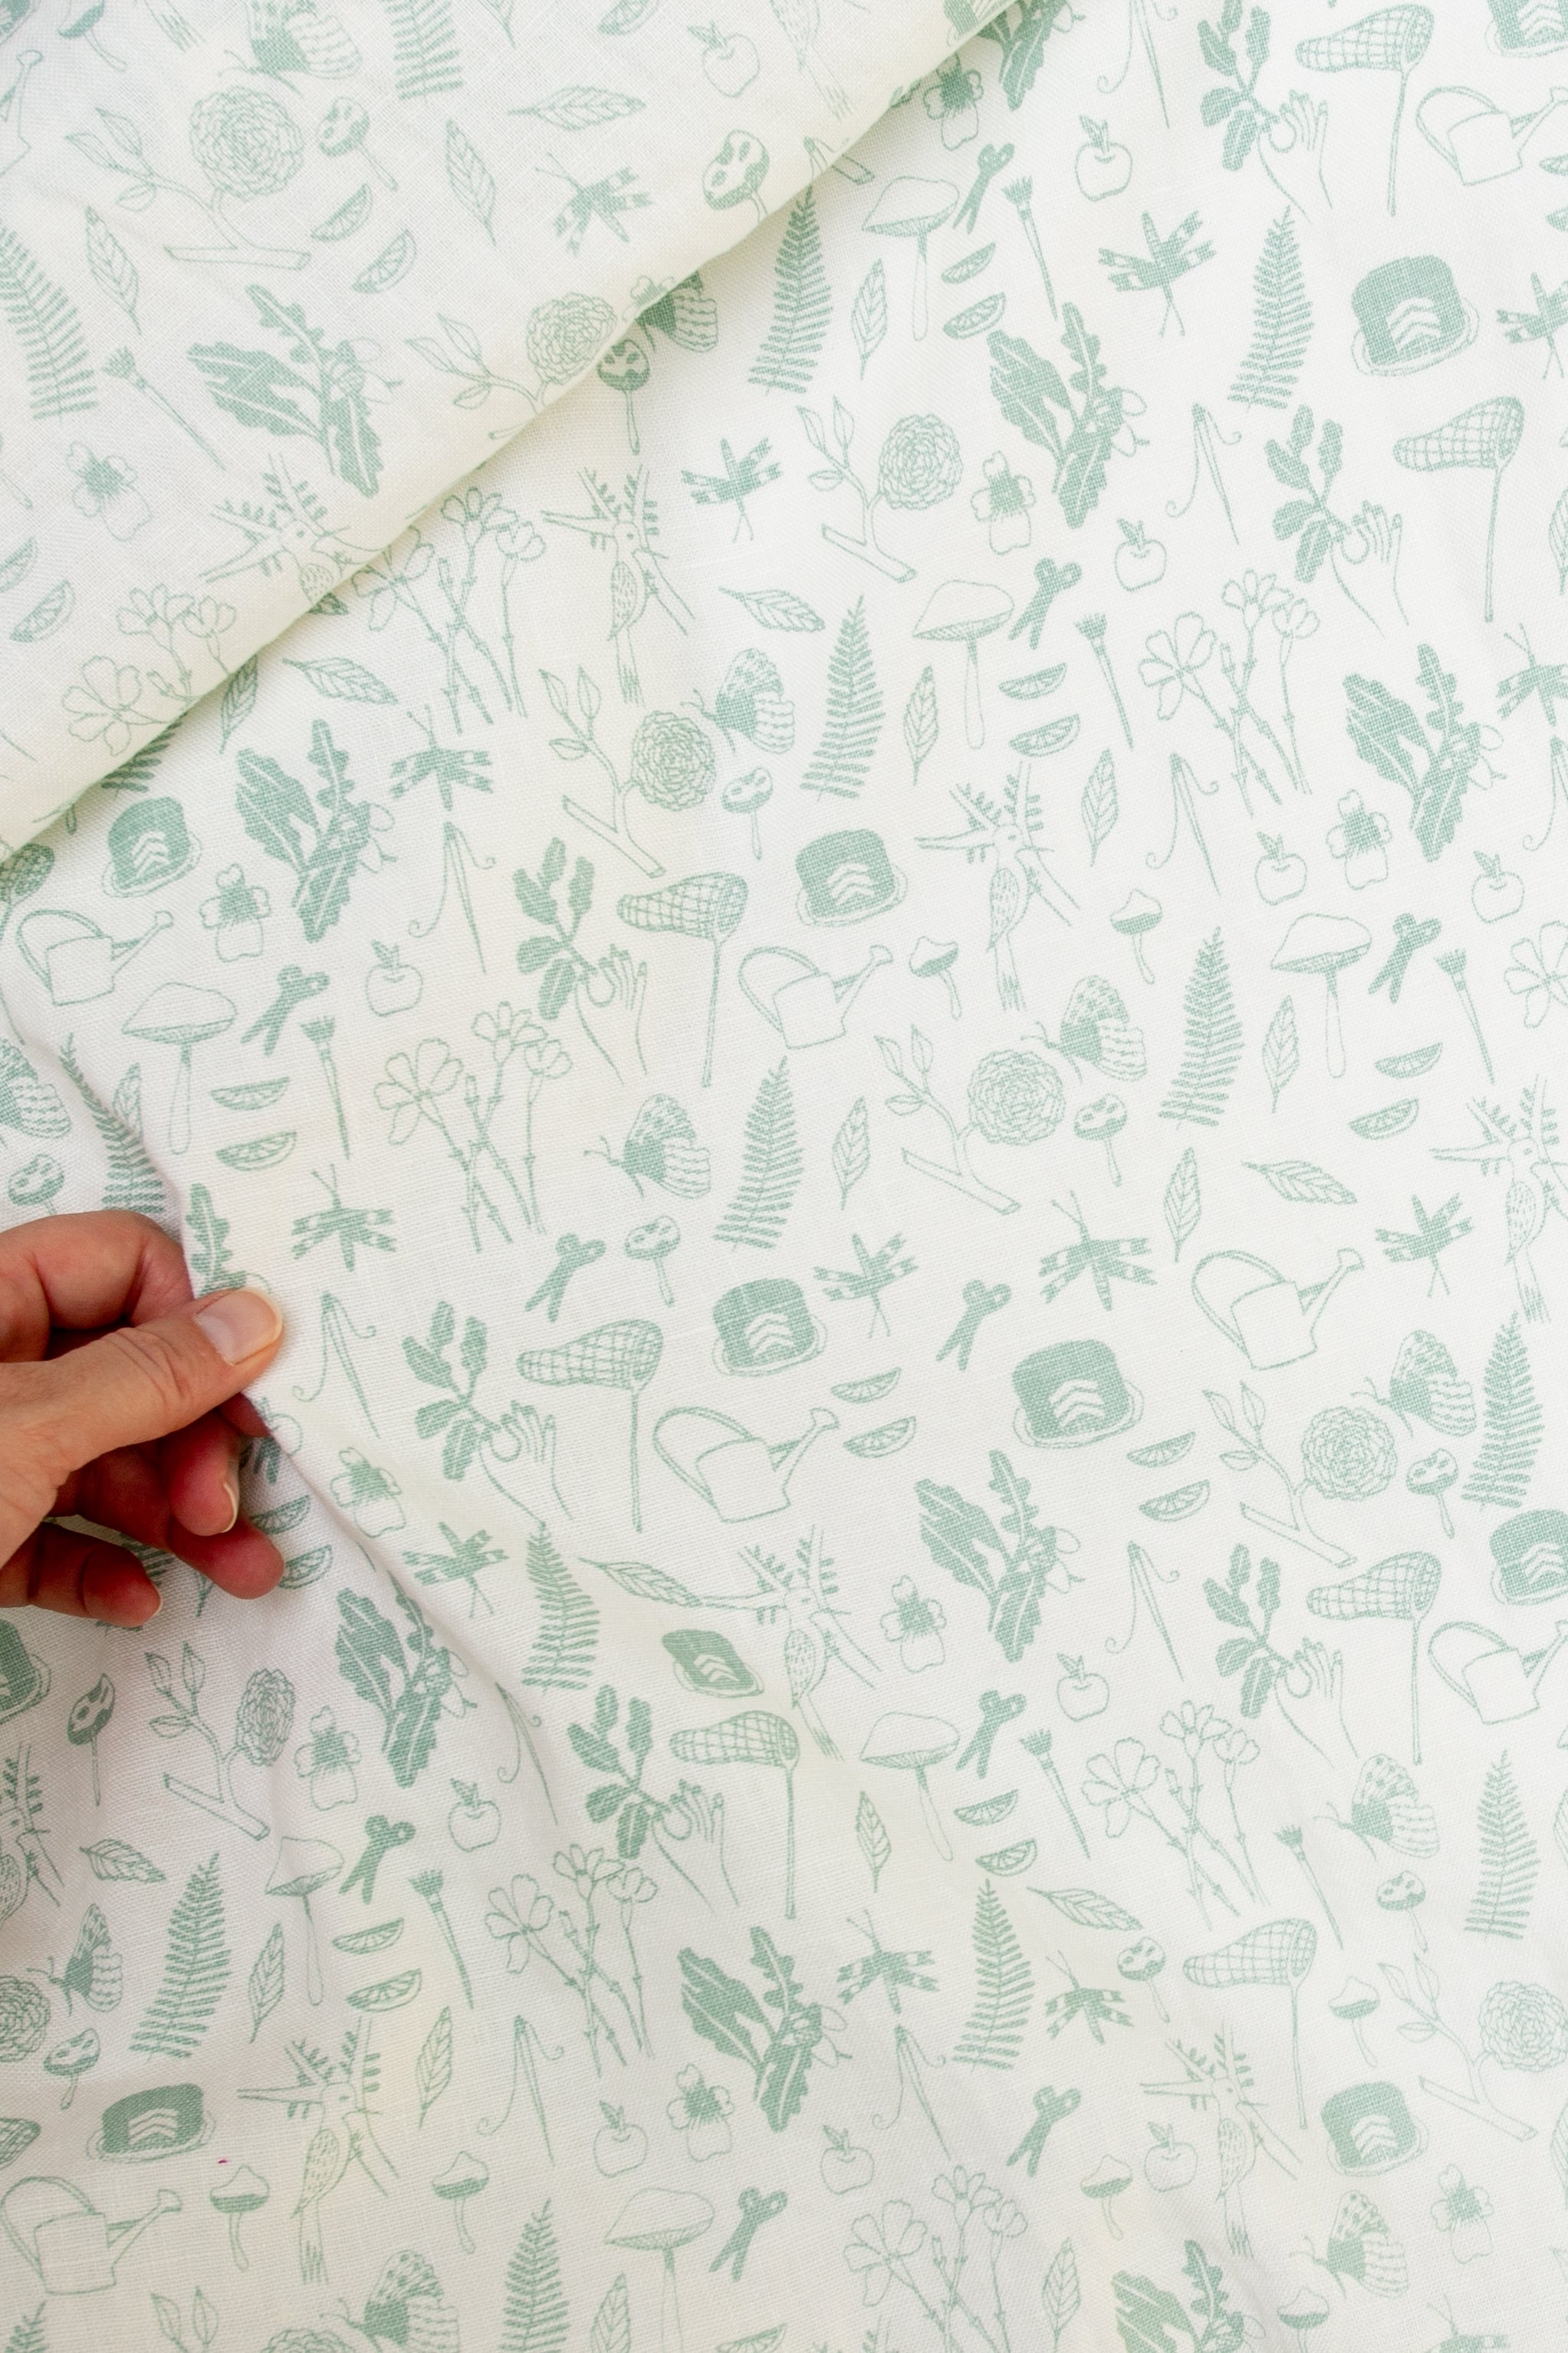 Screen printed fabric yardage with little illustration and hand for scale